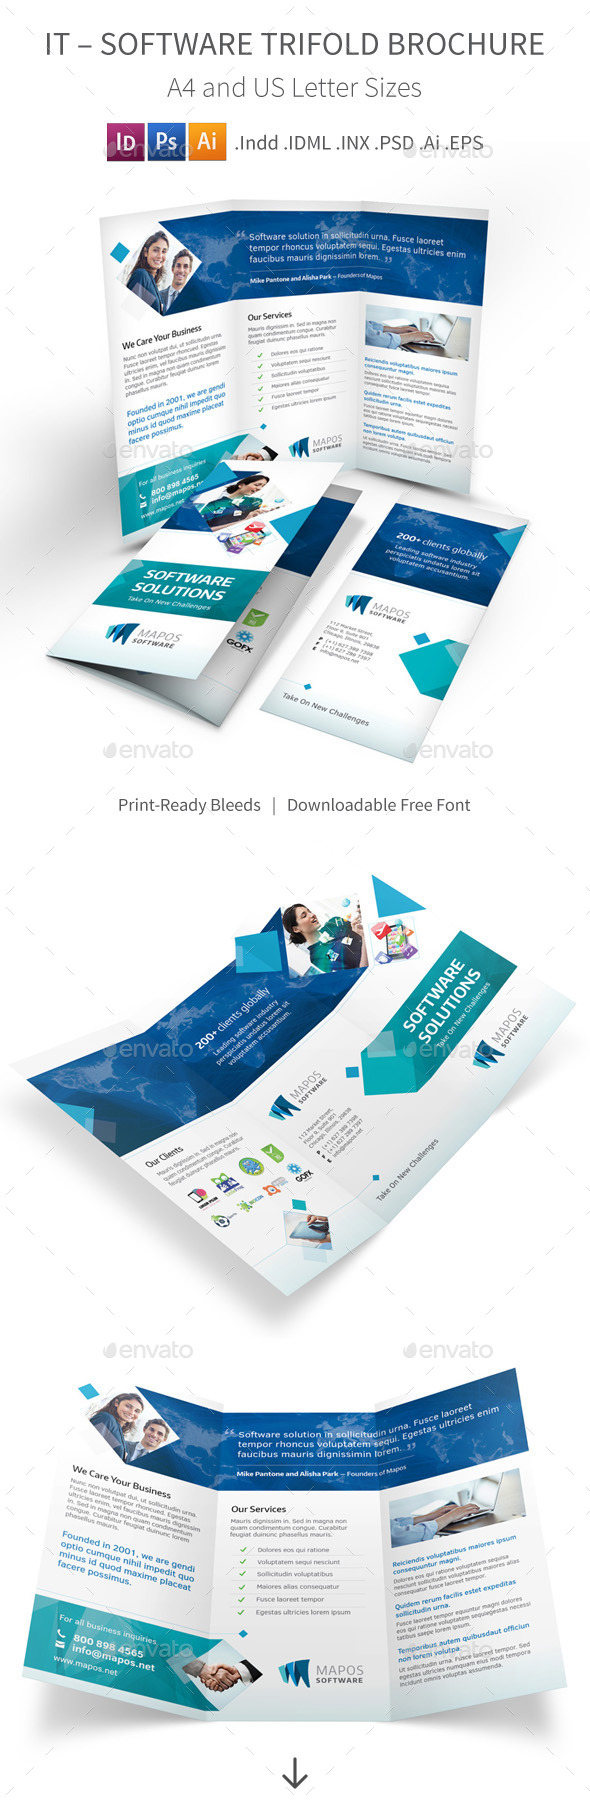 GraphicRiver IT Software Trifold Brochure 9989957